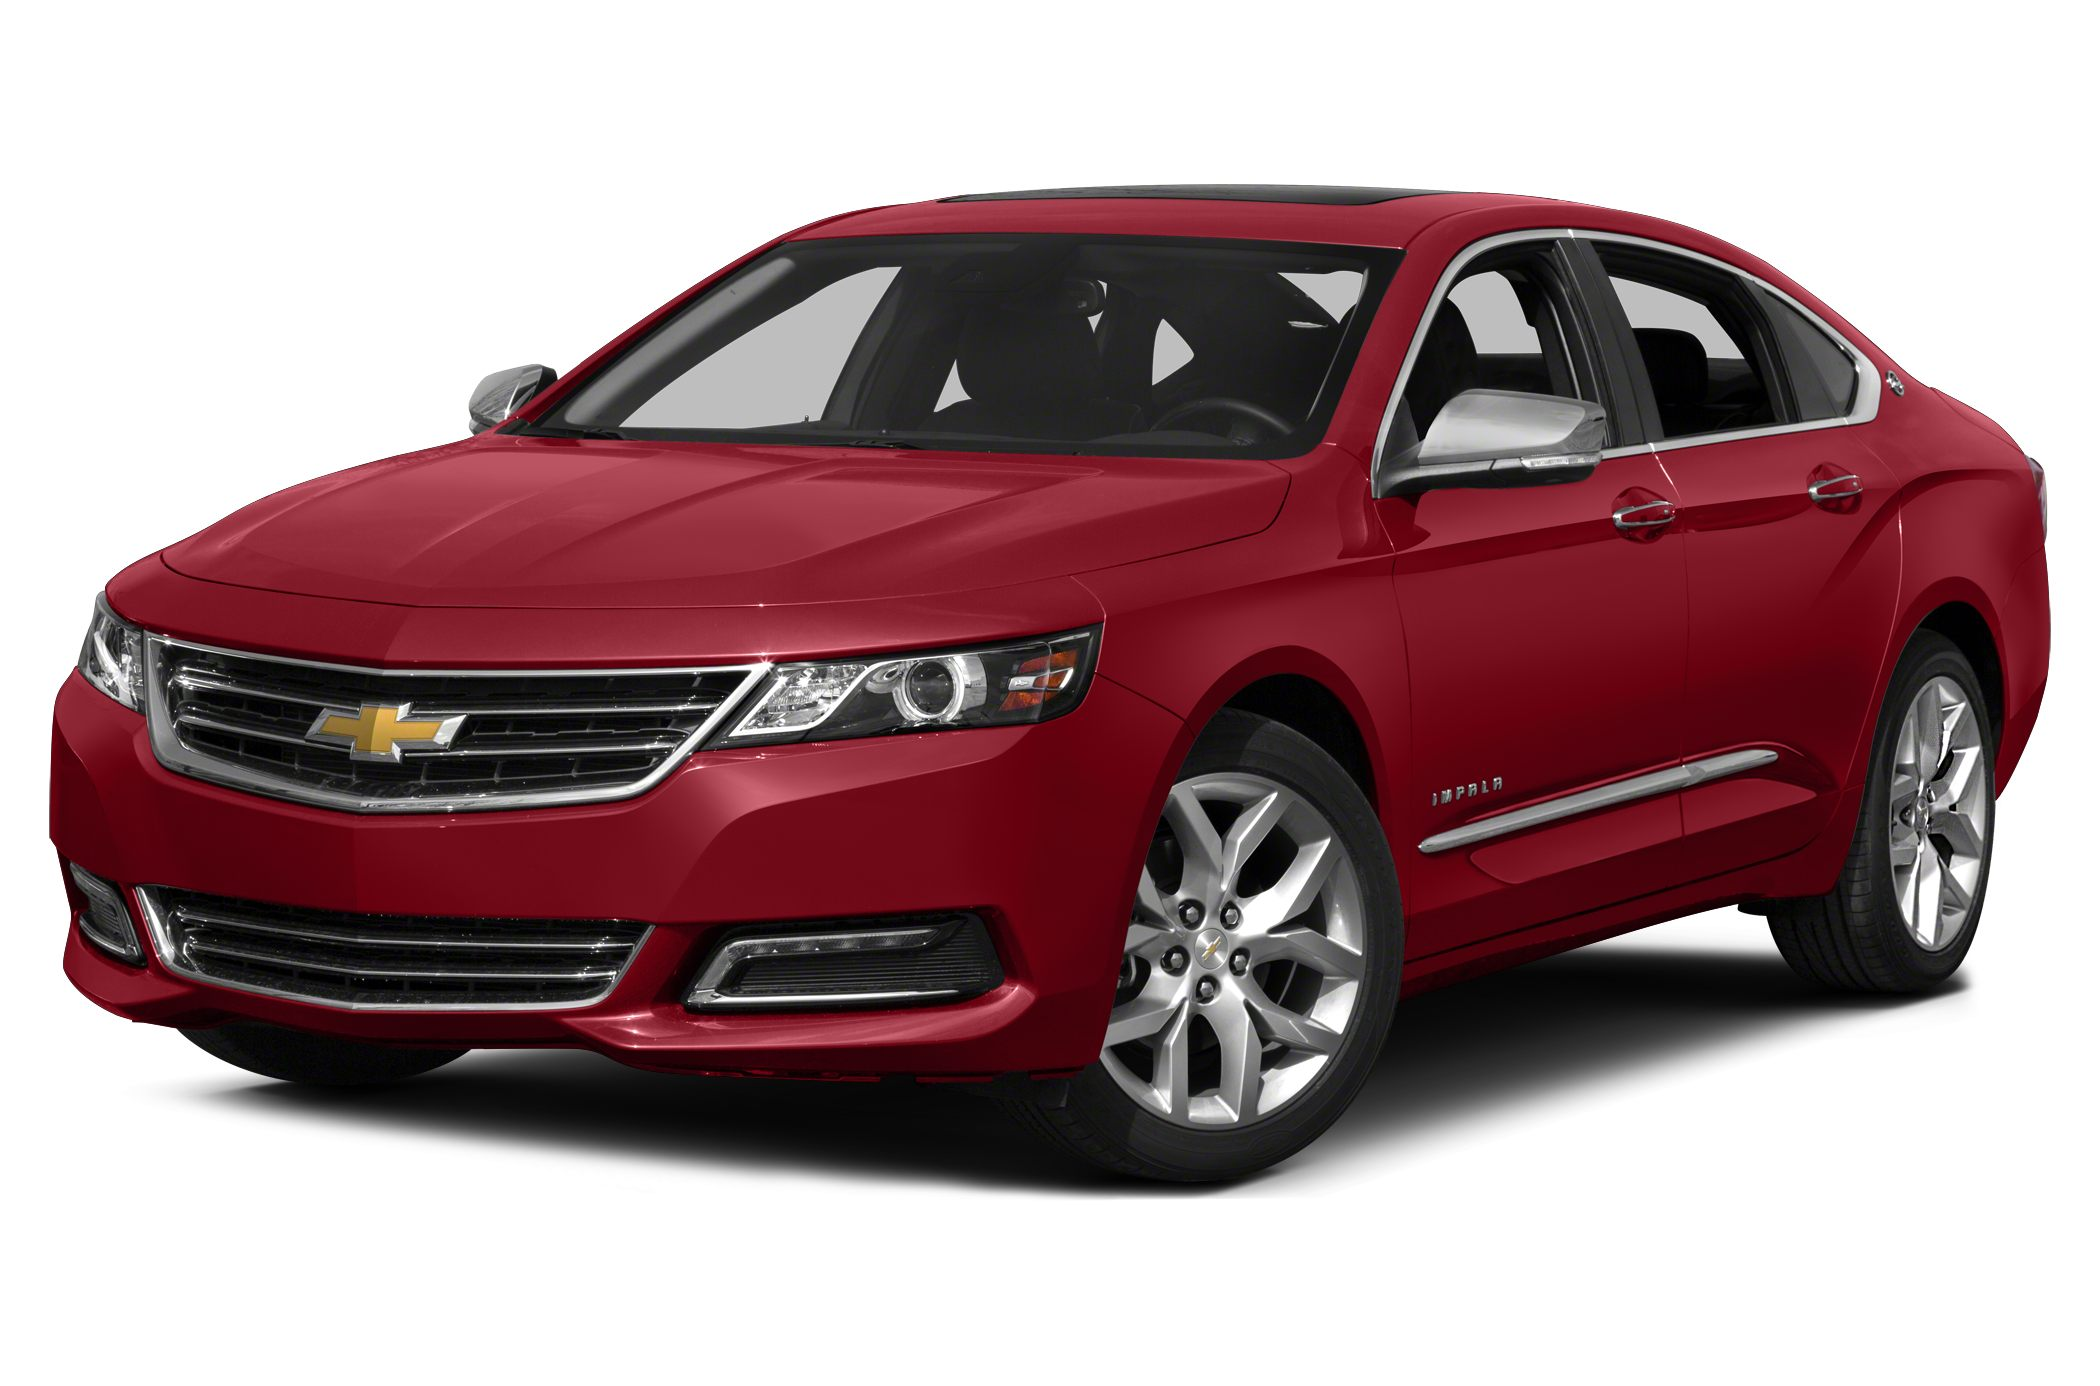 2015 Chevrolet Impala 2LZ Sedan for sale in New Holland for $39,920 with 0 miles